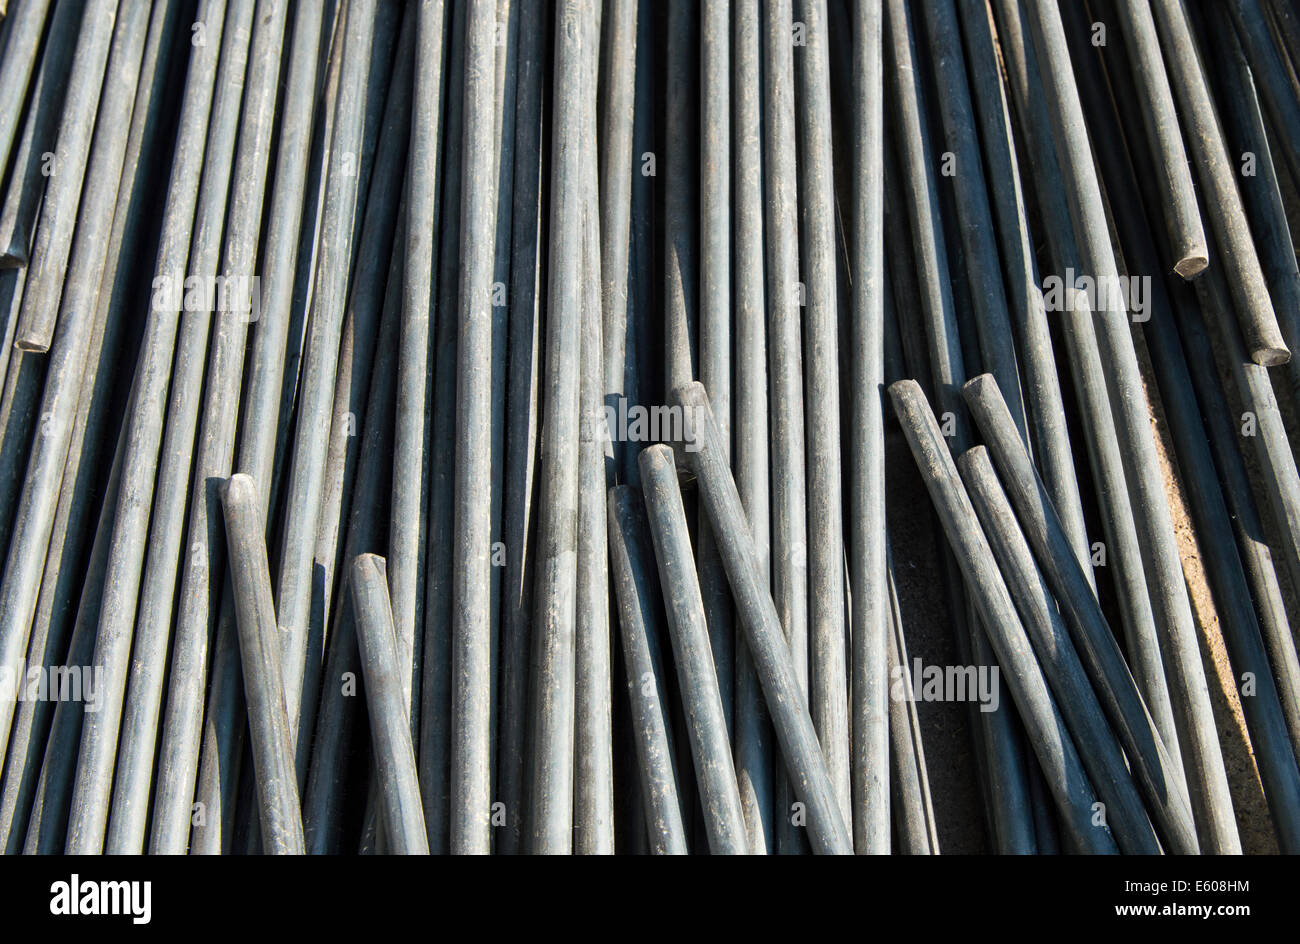 Rods Stack Construction Site Backgrounds Stock Photos